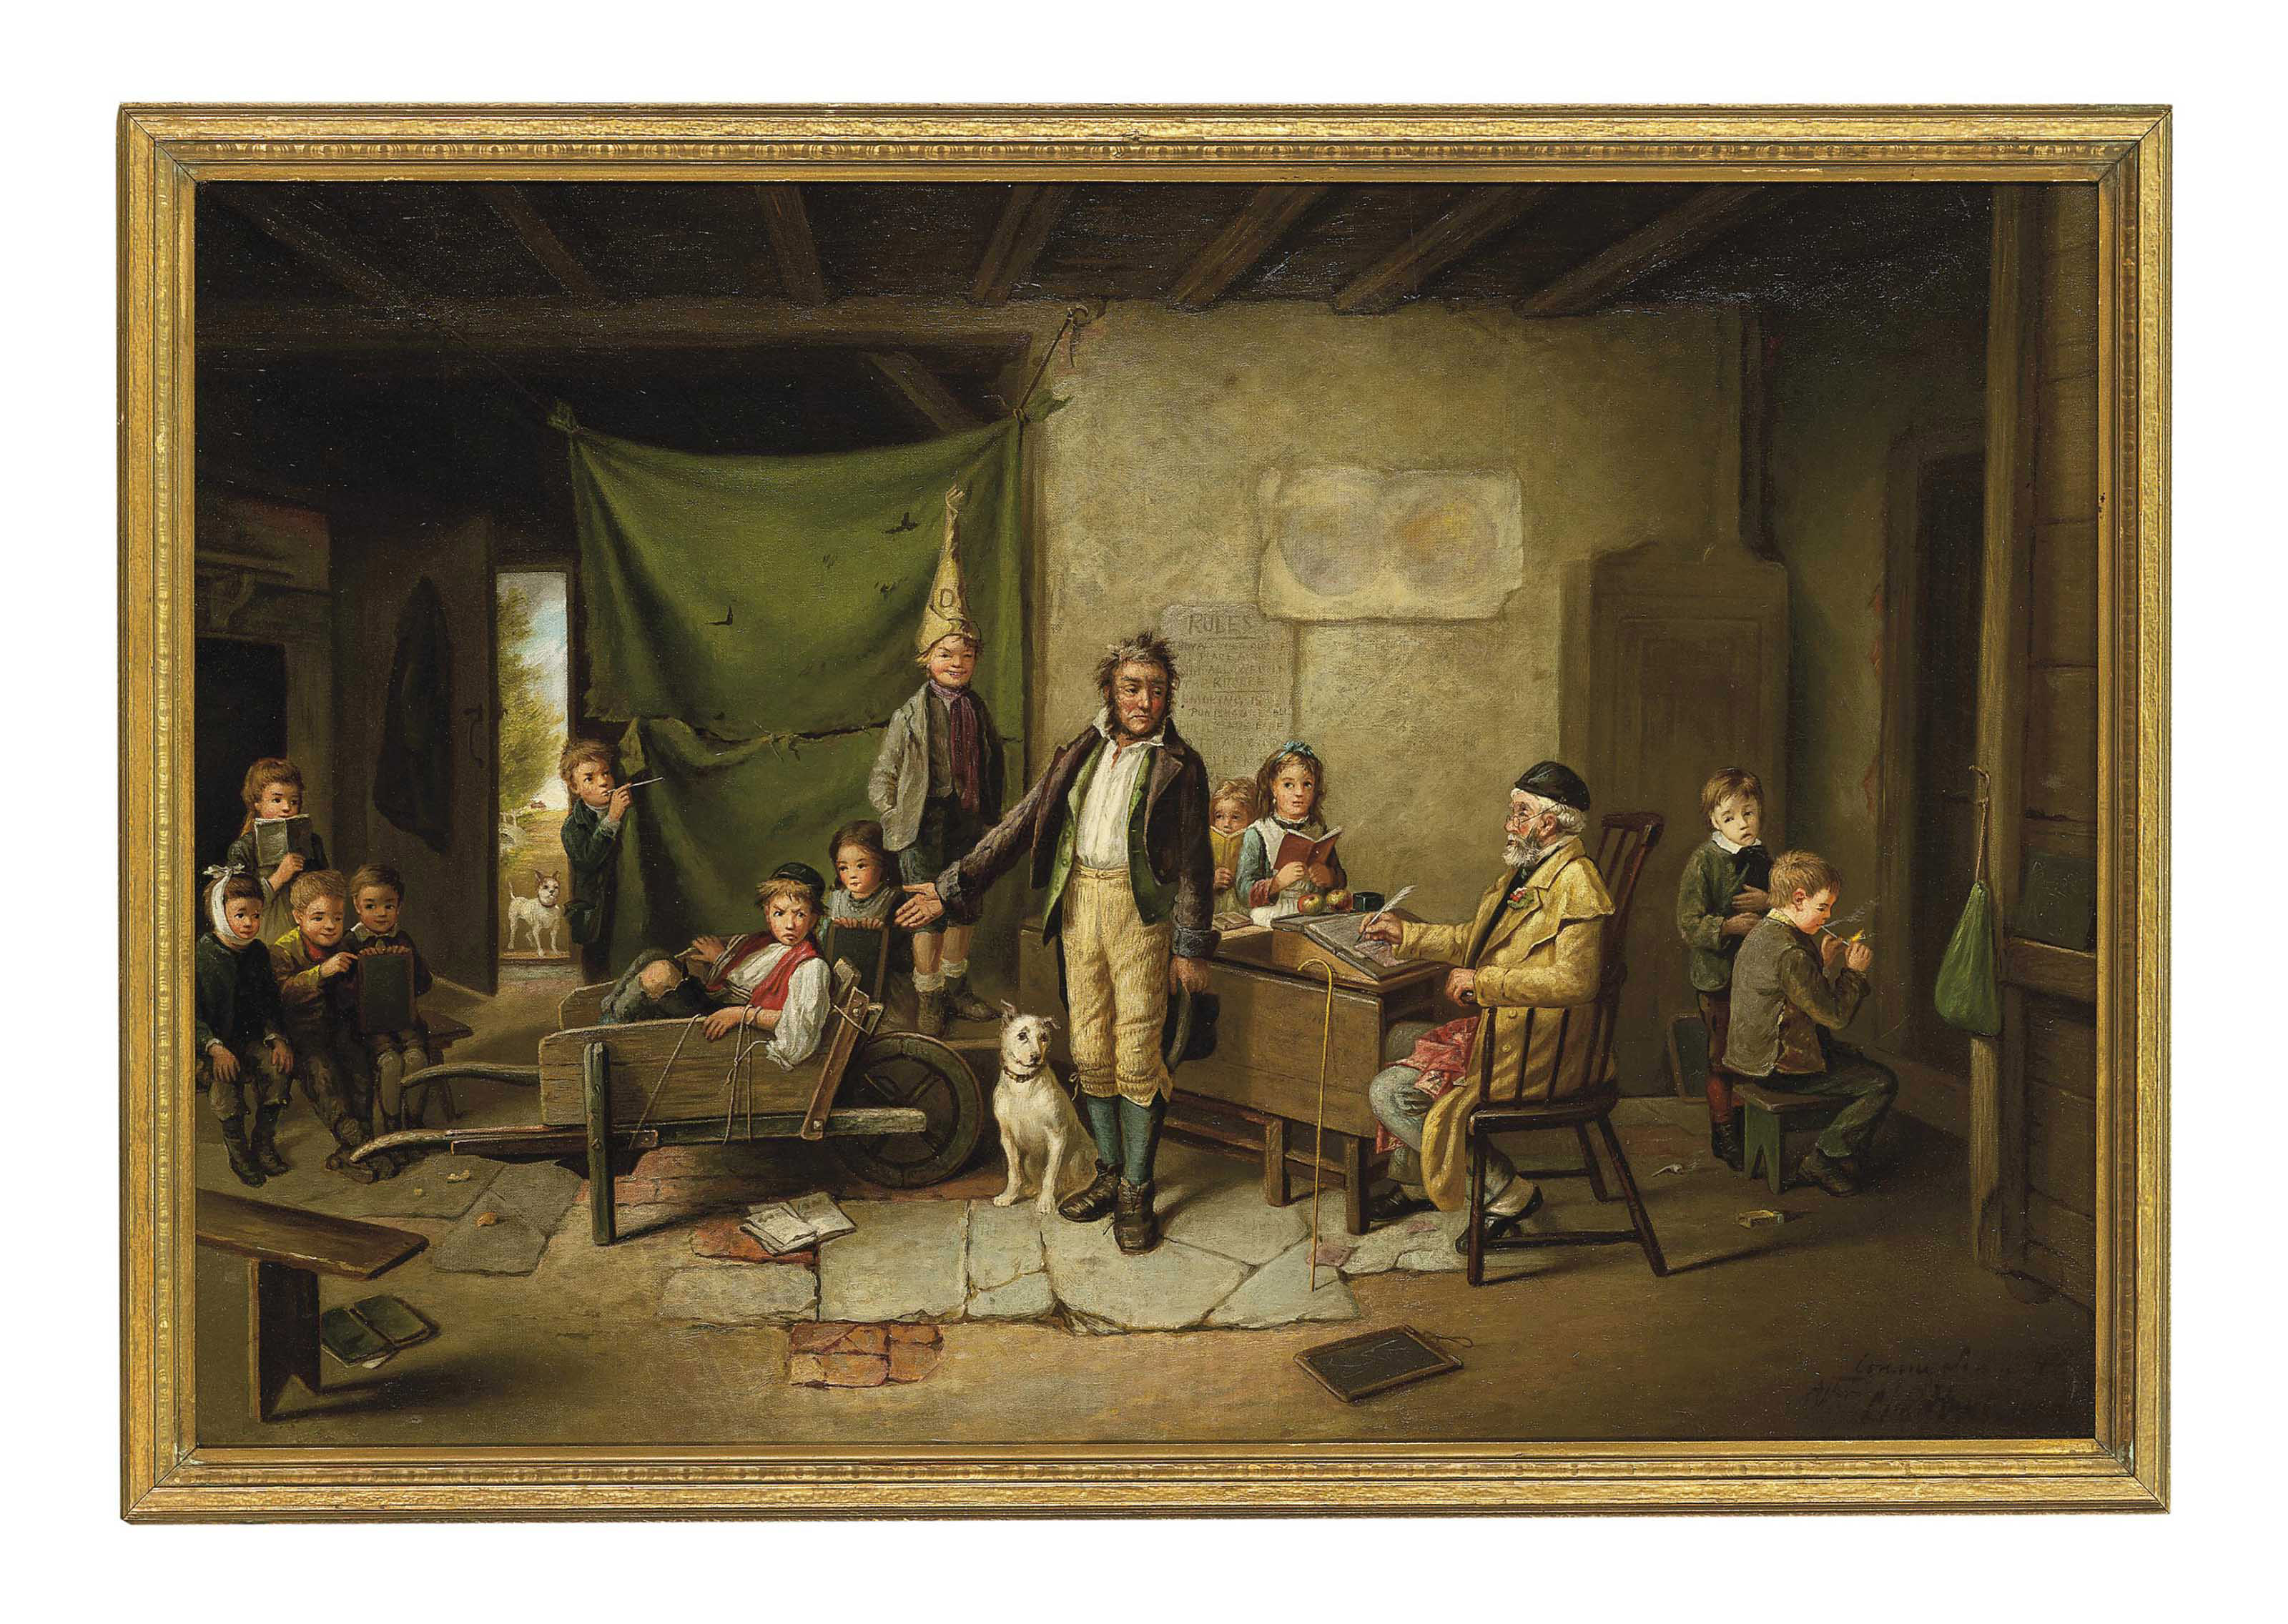 The unruly classroom